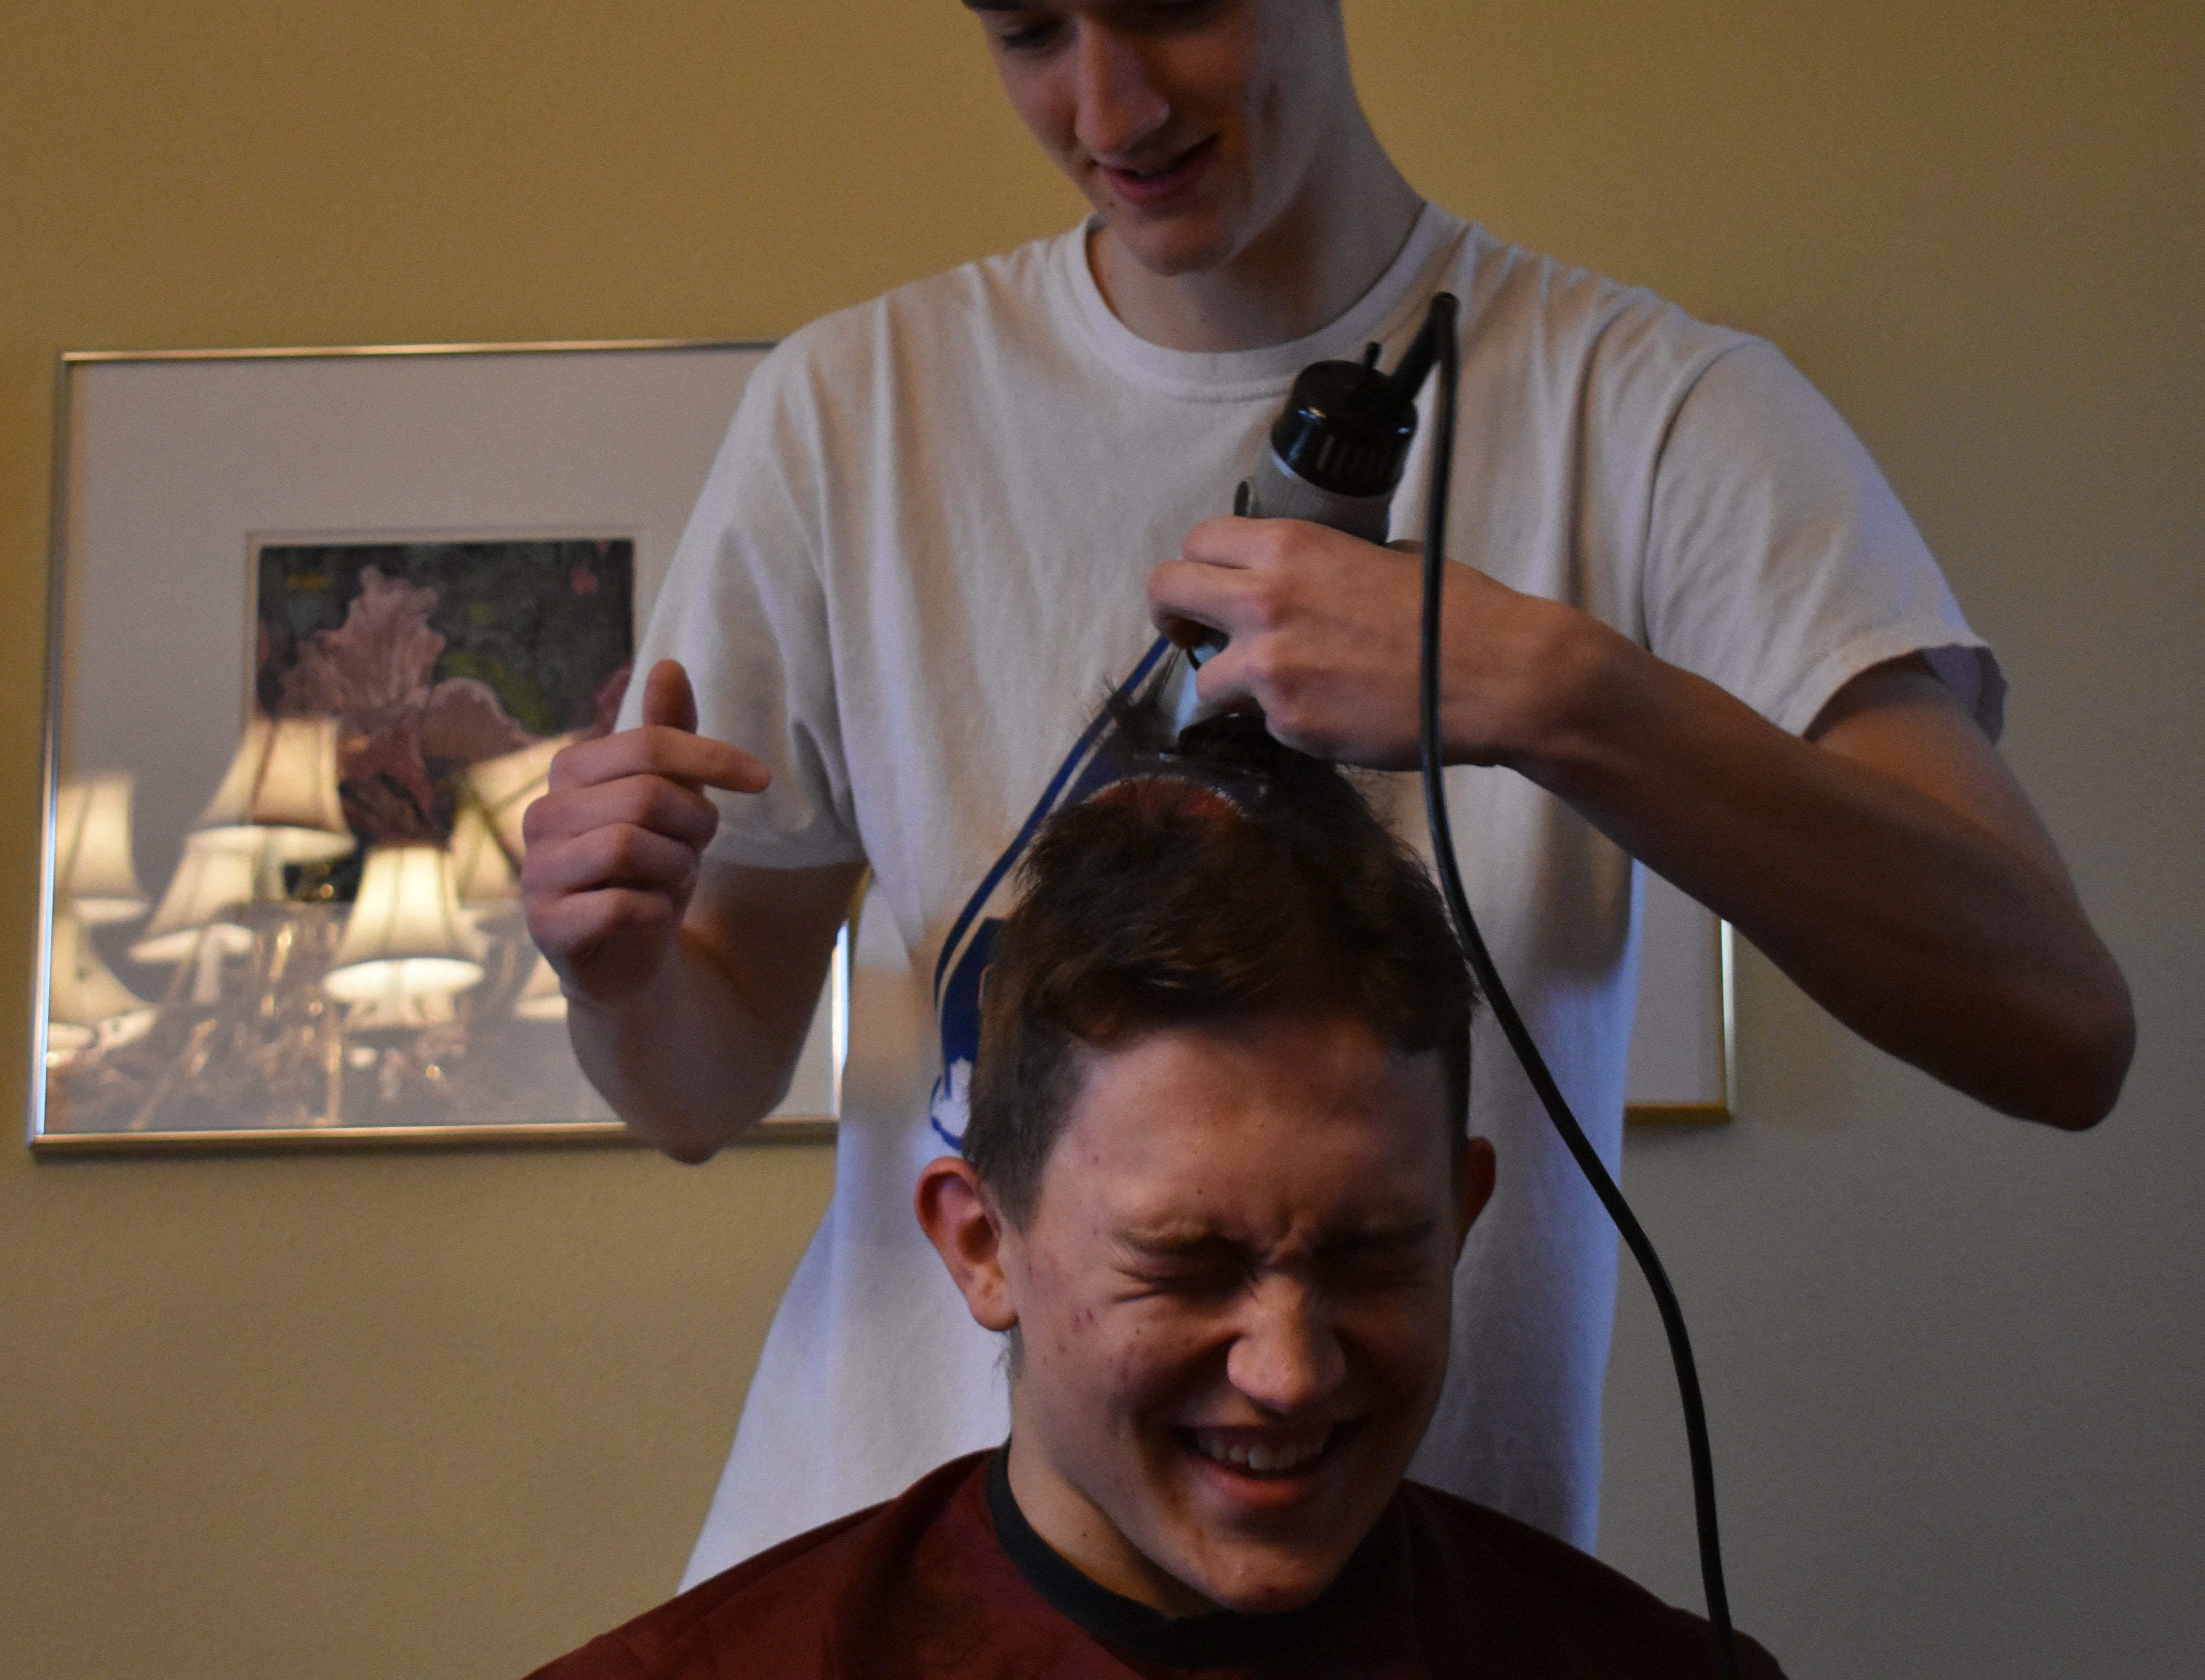 Peter Krohn reacts as Gilon Dierks shaves his head Dec. 31, 2018, in support of teammate Carter Edgerely, who was recently diagnosed with bone cancer.